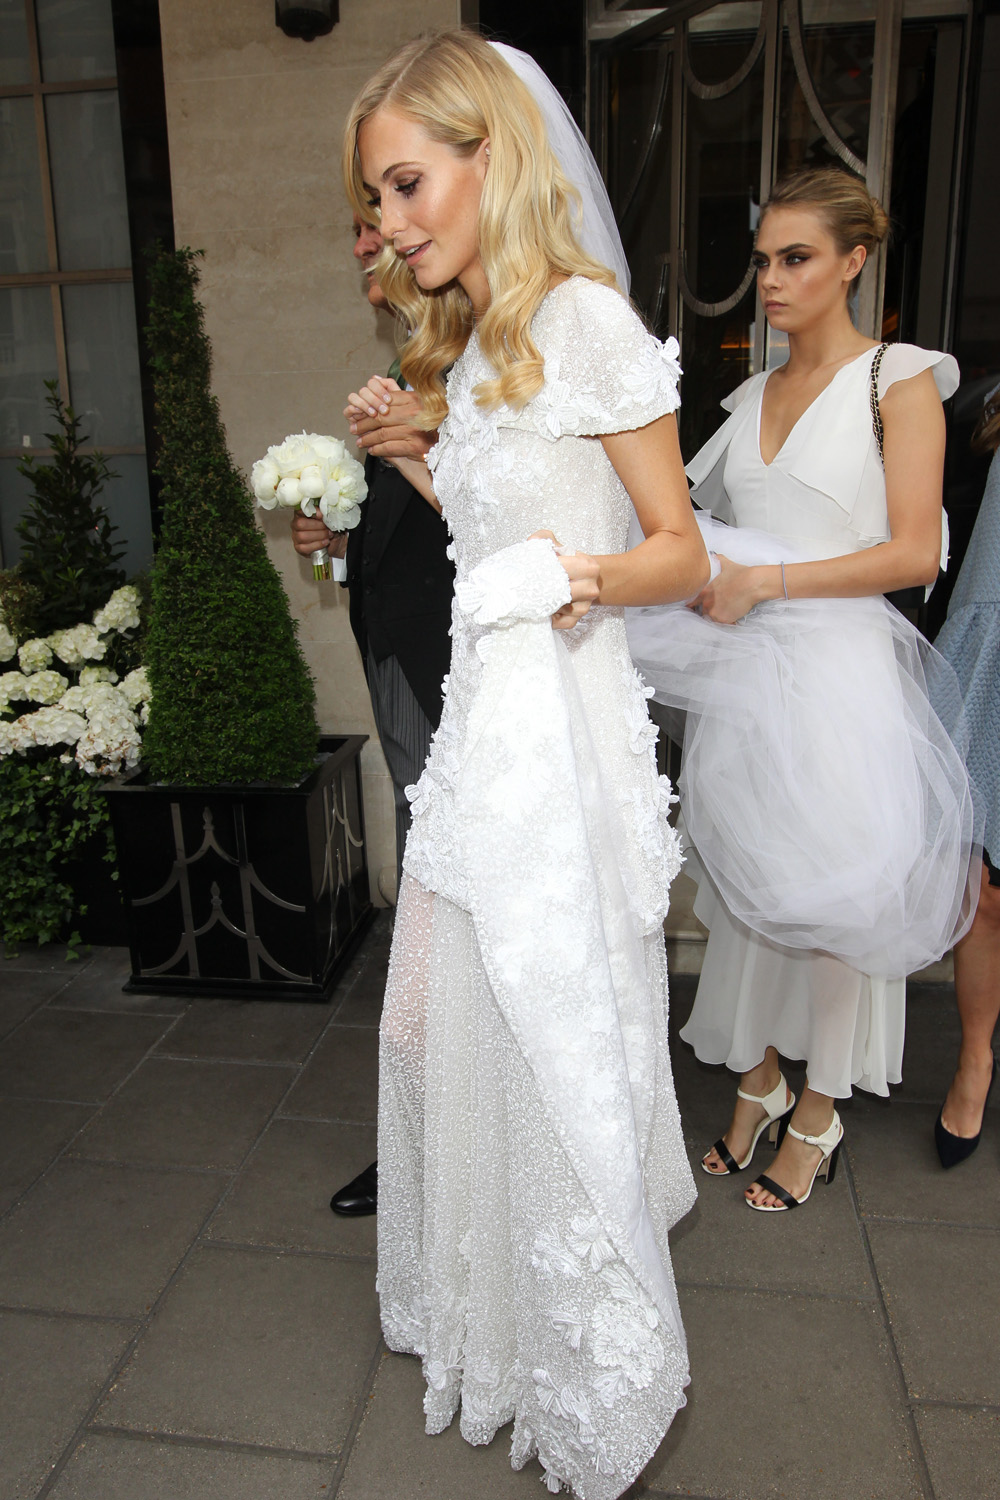 Best Chanel Wedding Dresses: These Are The Celebrity Chanel Brides ...